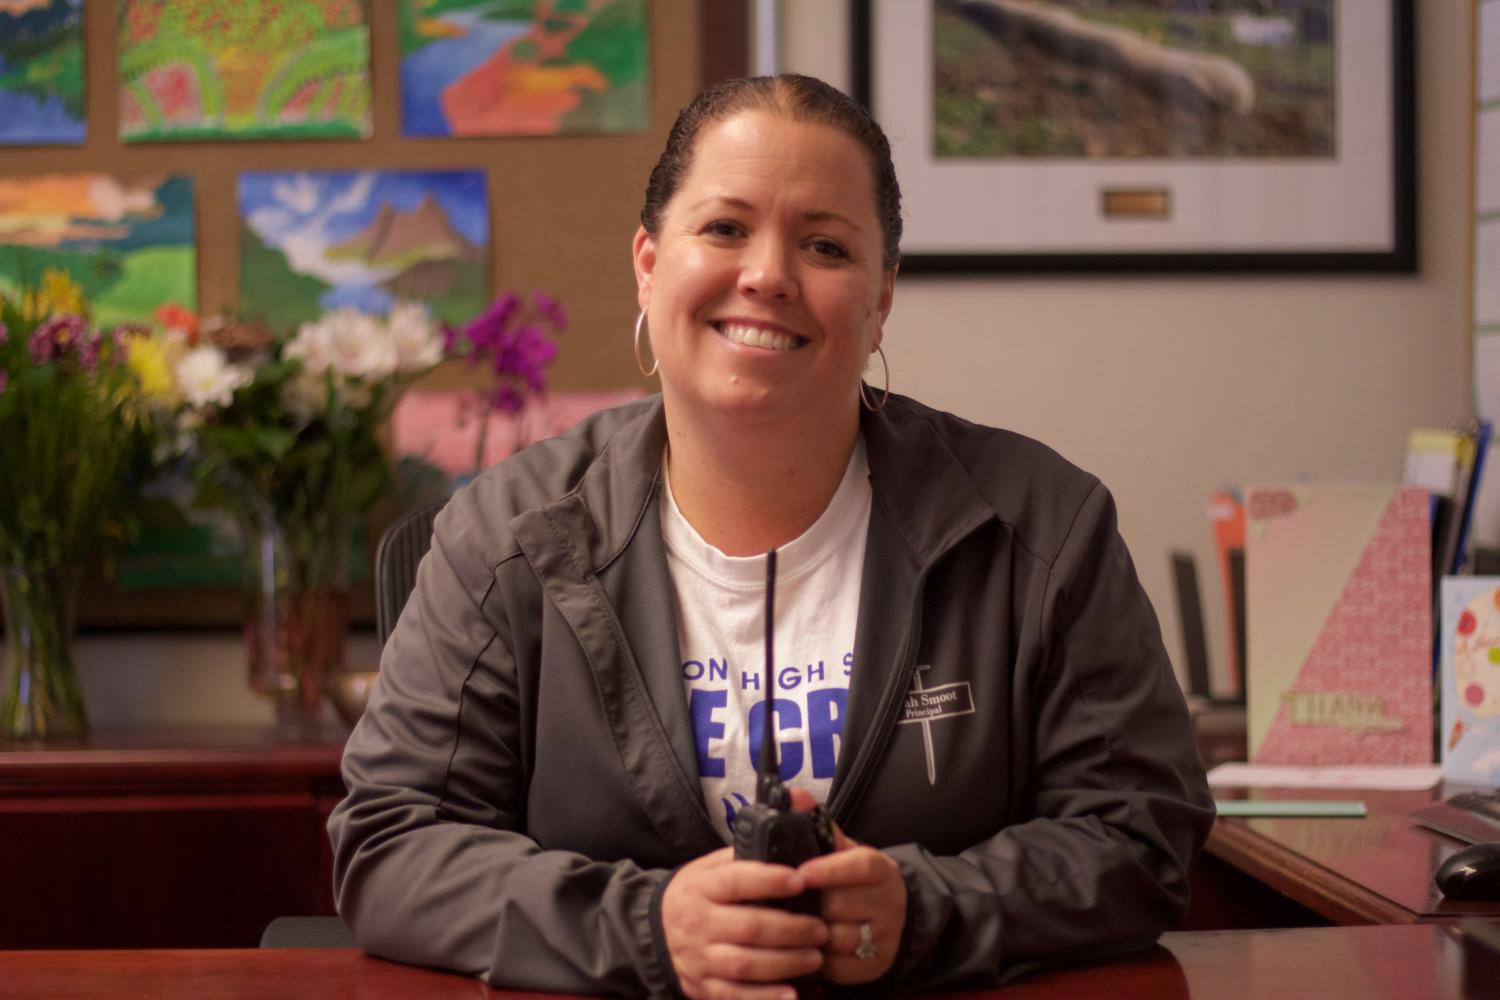 After serving six years as Irvington's Principal, Ms. Barrious leaves behind a legacy and will be succeeded by Interim Principal Dr. Carol Halbe.